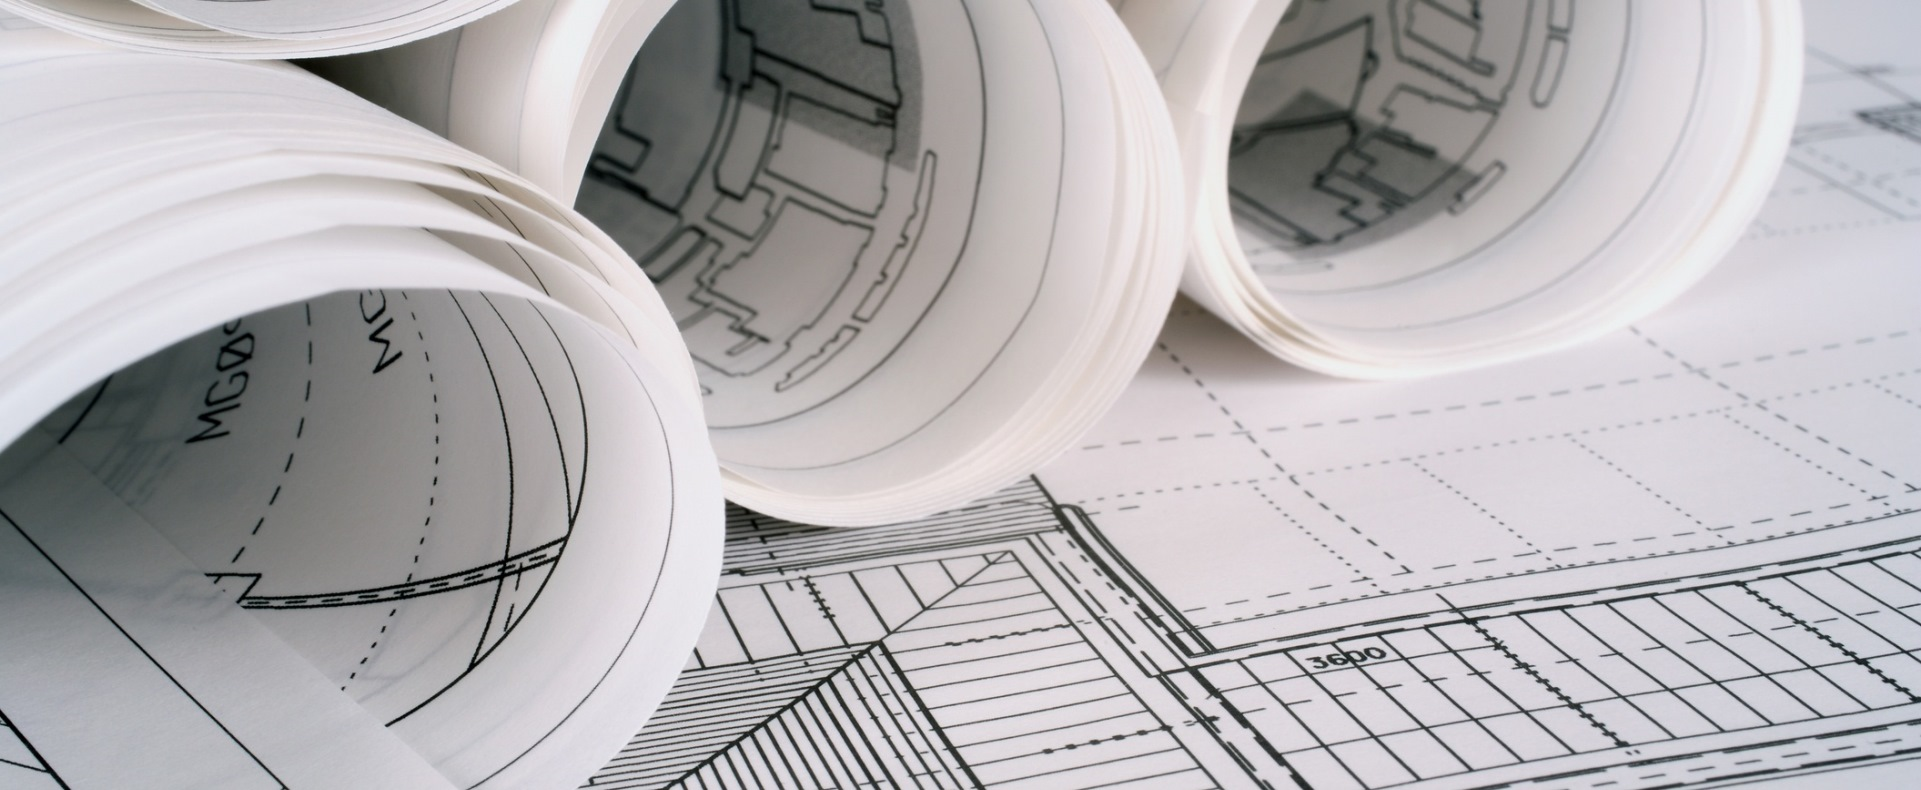 Zia for Architecture firms in zambia